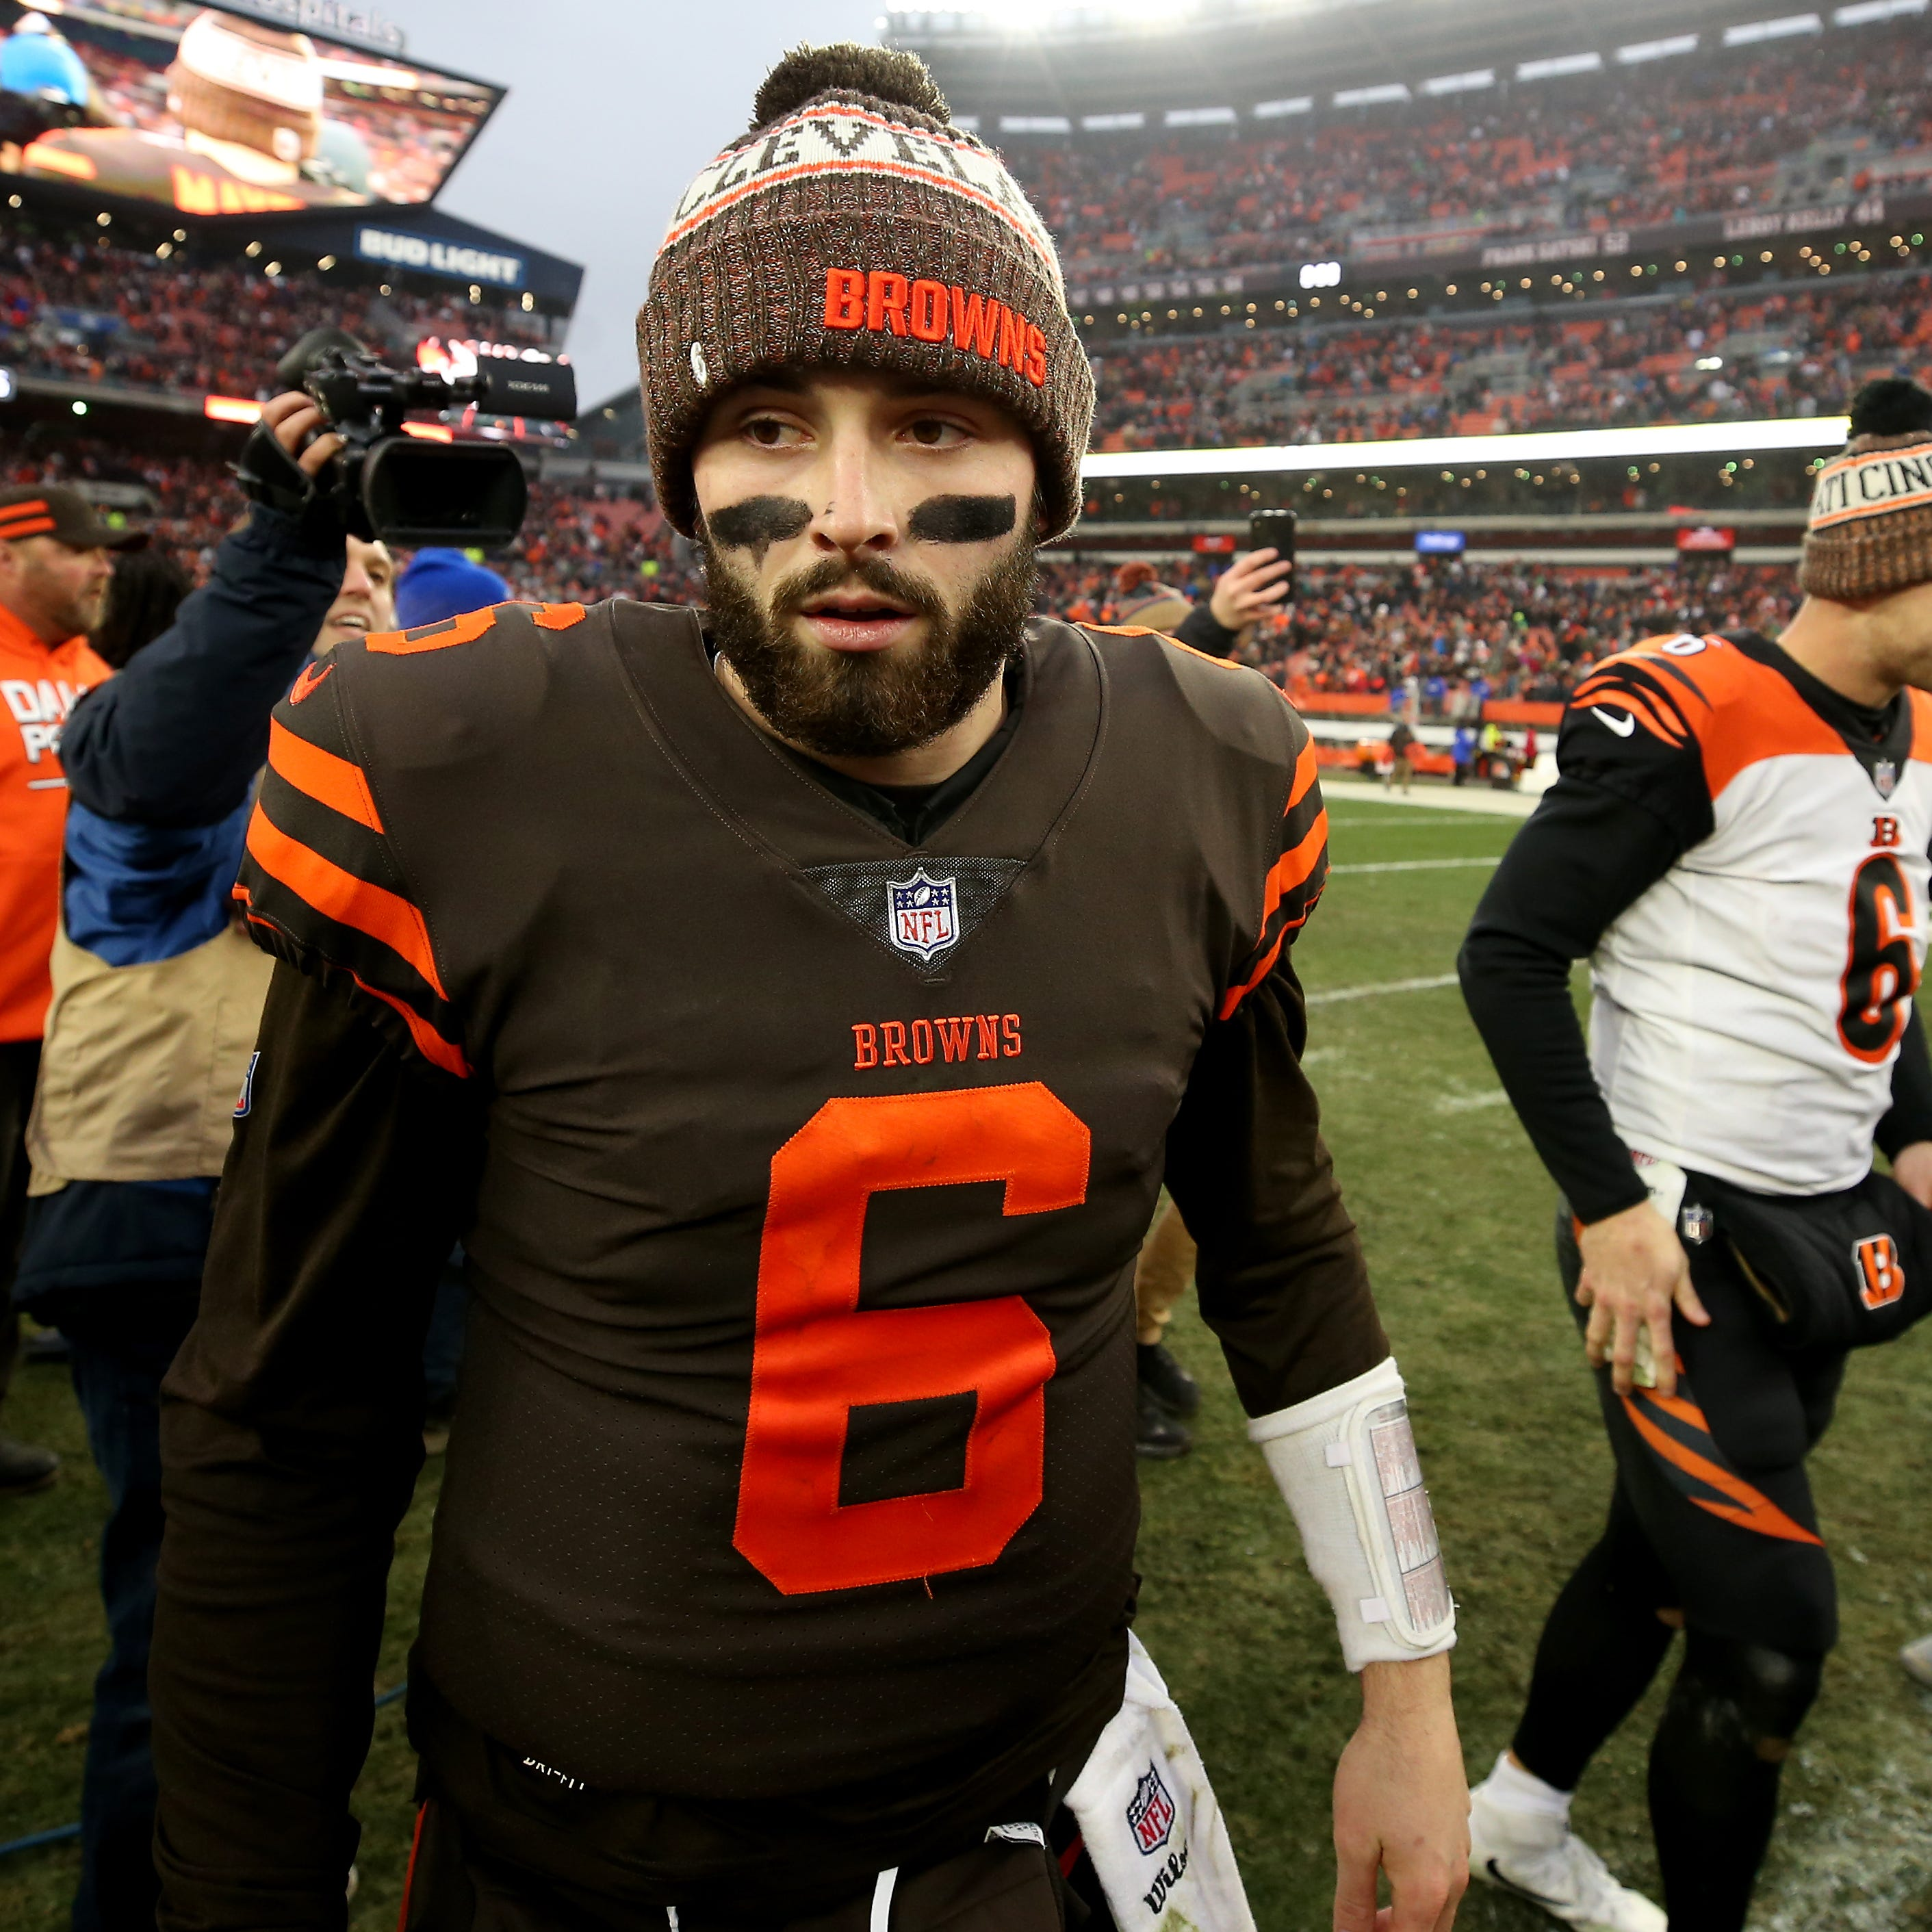 Cleveland Browns quarterback Baker Mayfield on Mason eliminating valedictorian honor: 'This is so dumb.'